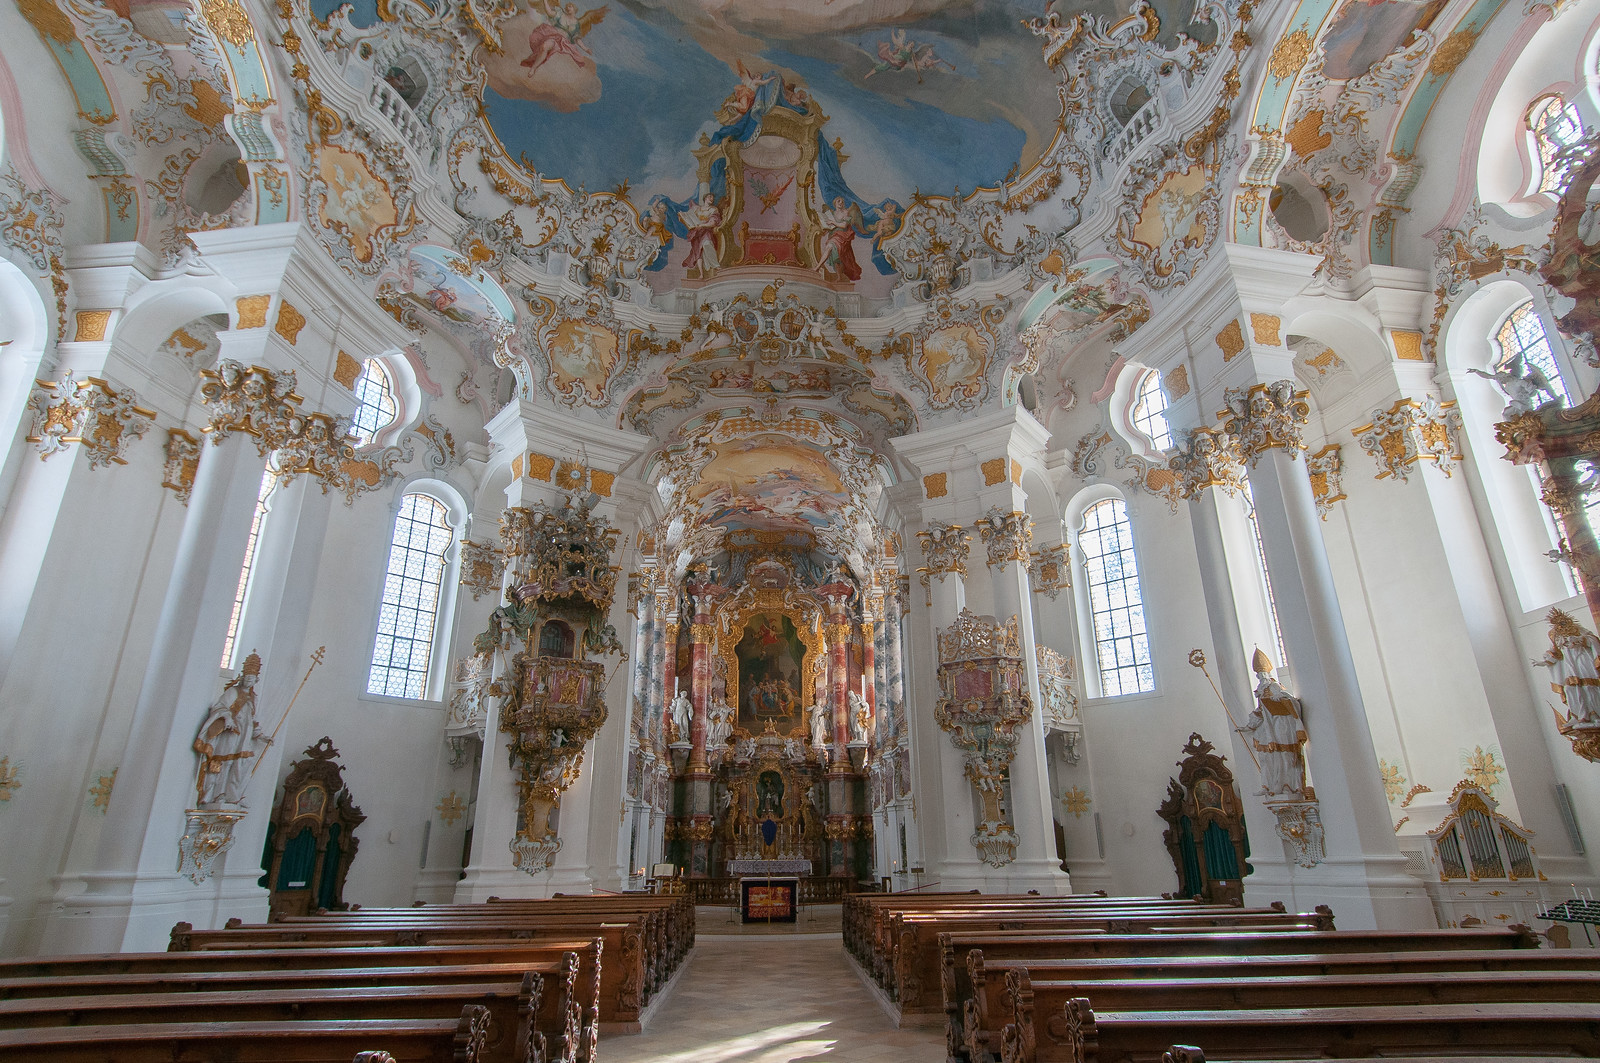 Pilgrimage Church of Wies UNESCO World Heritage Site